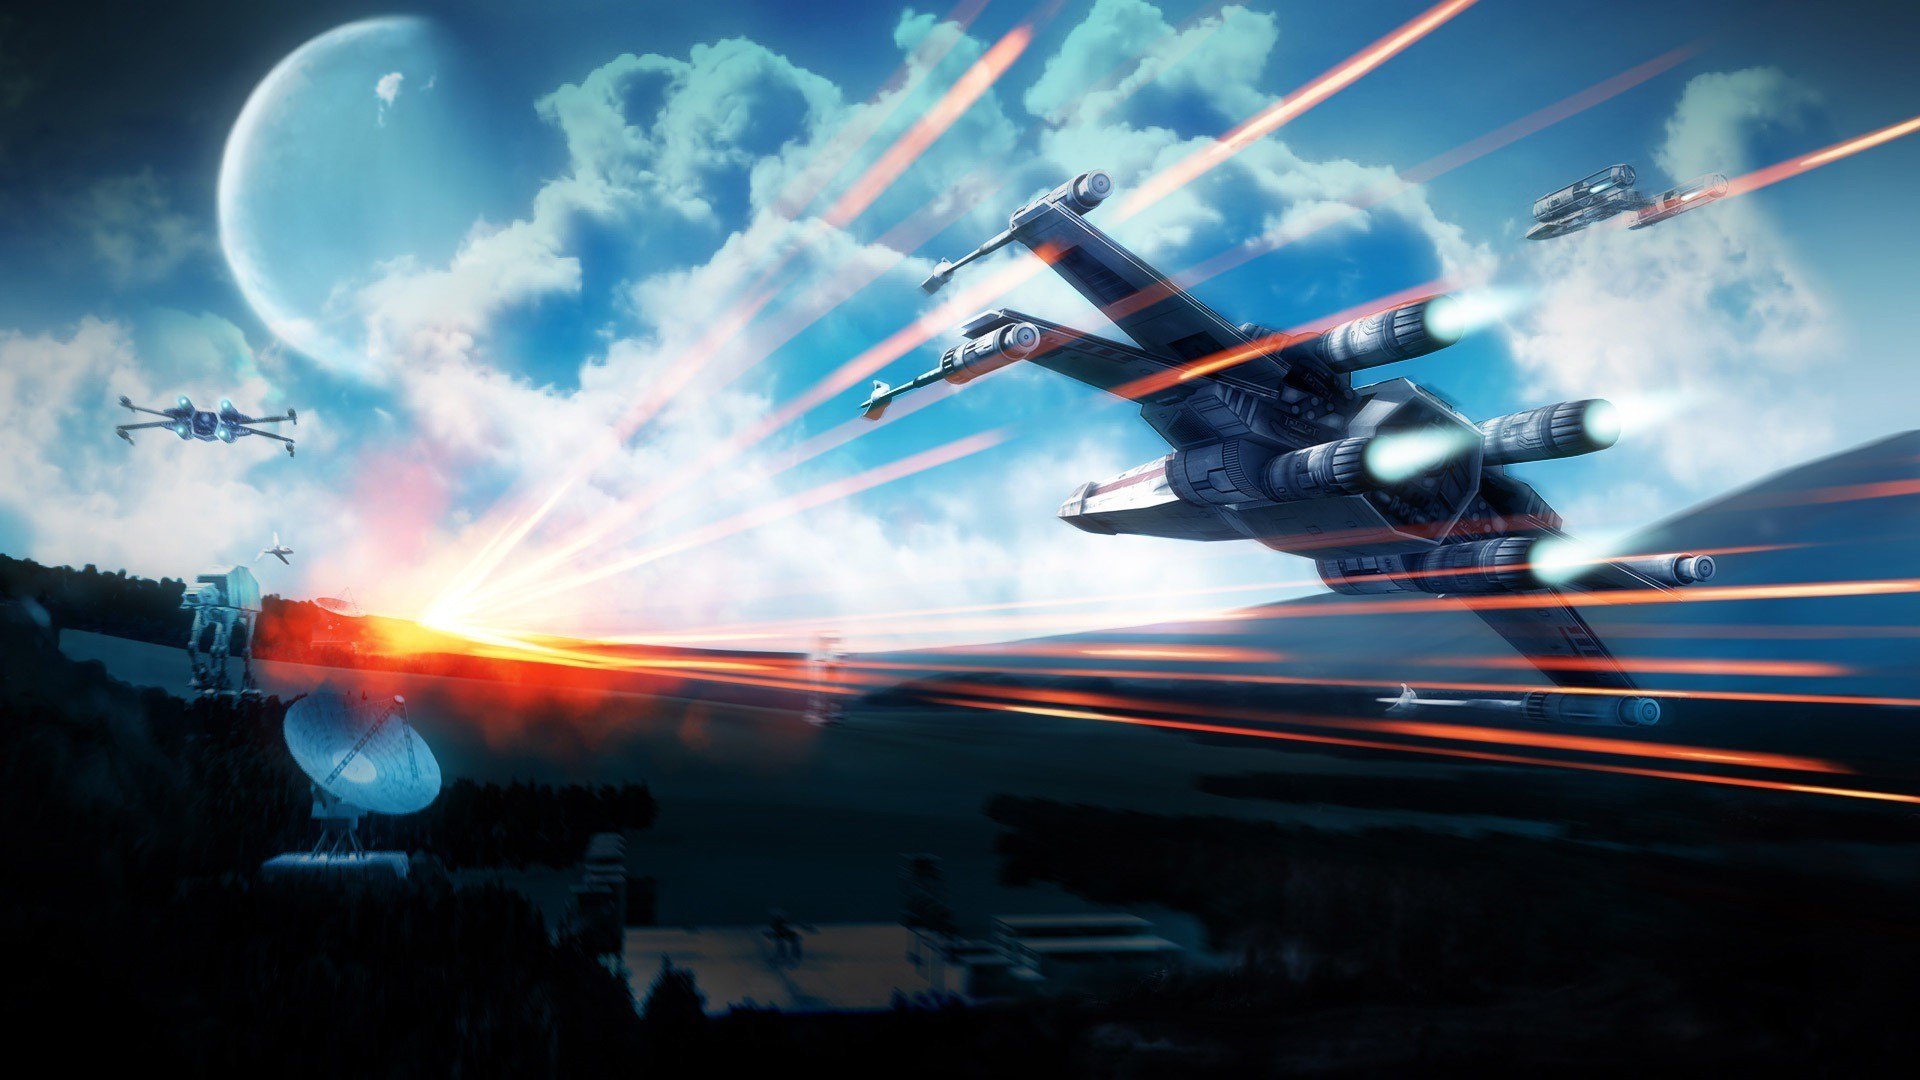 1920x1080 Squadron VII stars Wars x wing wallpaper 1920×1080 X Wing Wallpaper (45  Wallpapers